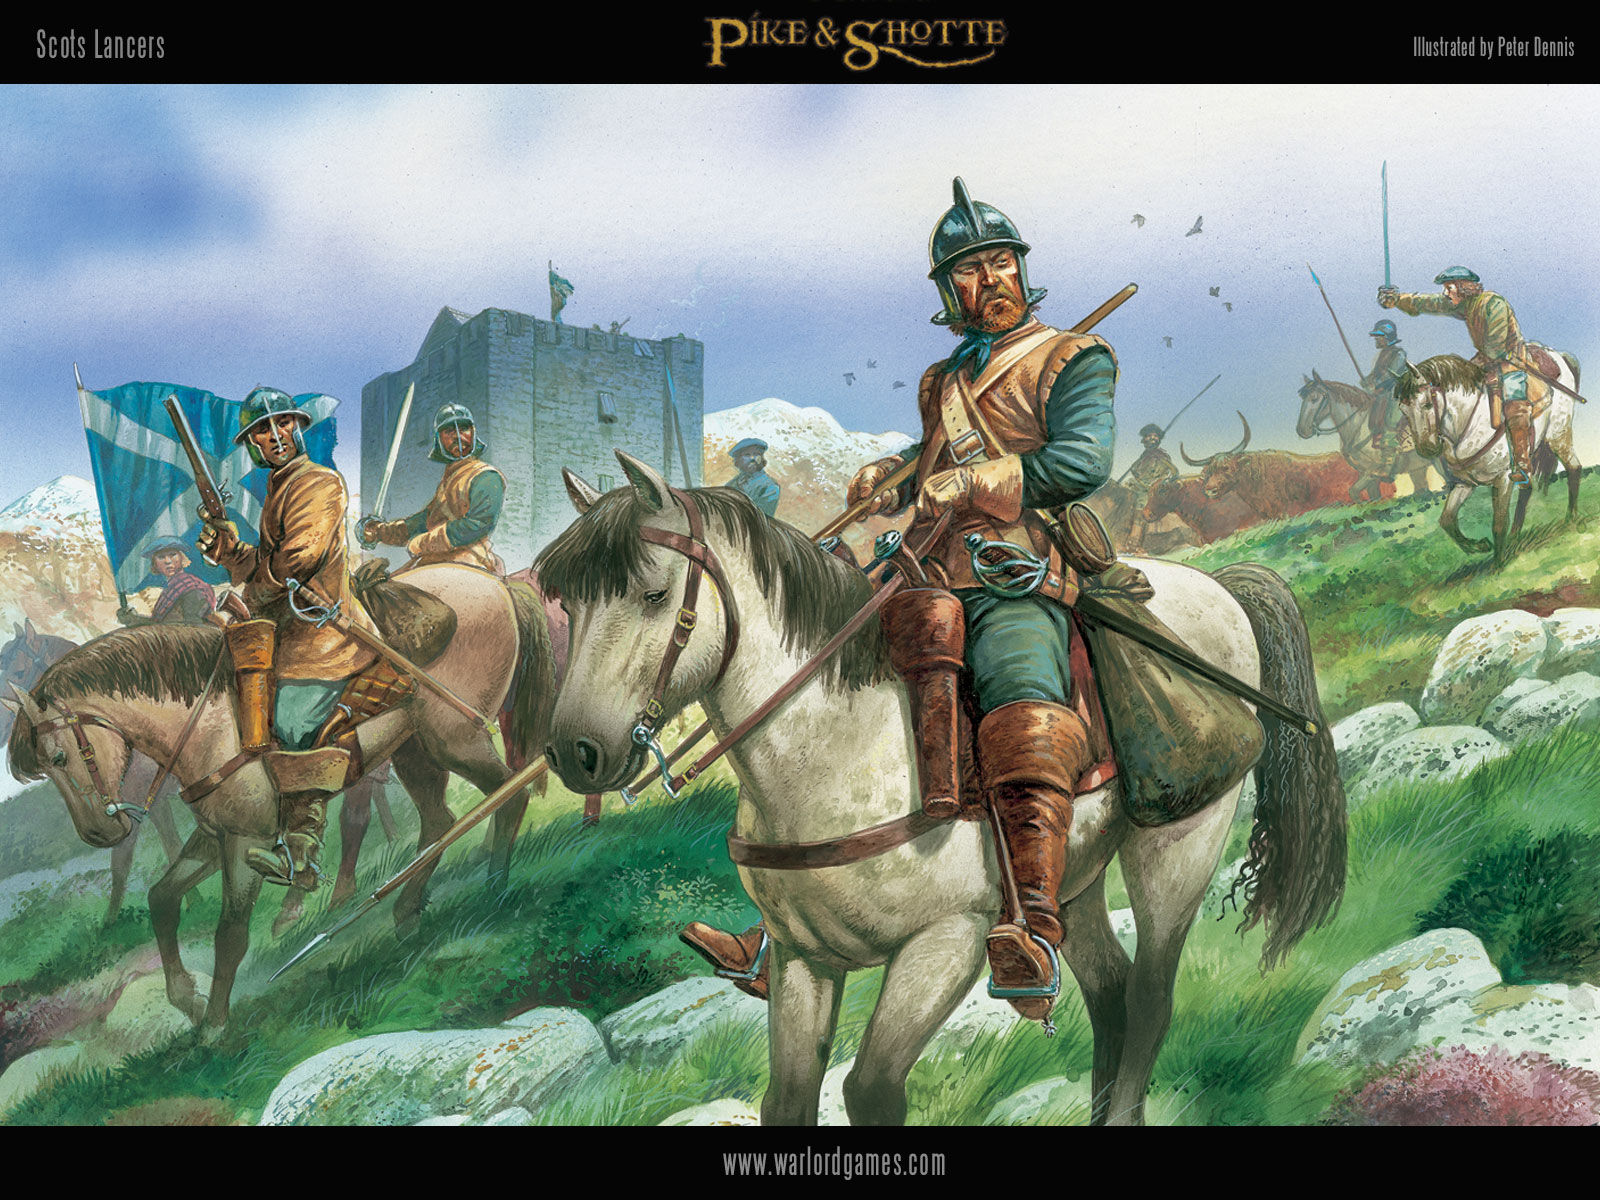 Illustrations P&S Scots-Lancers-wallpaper